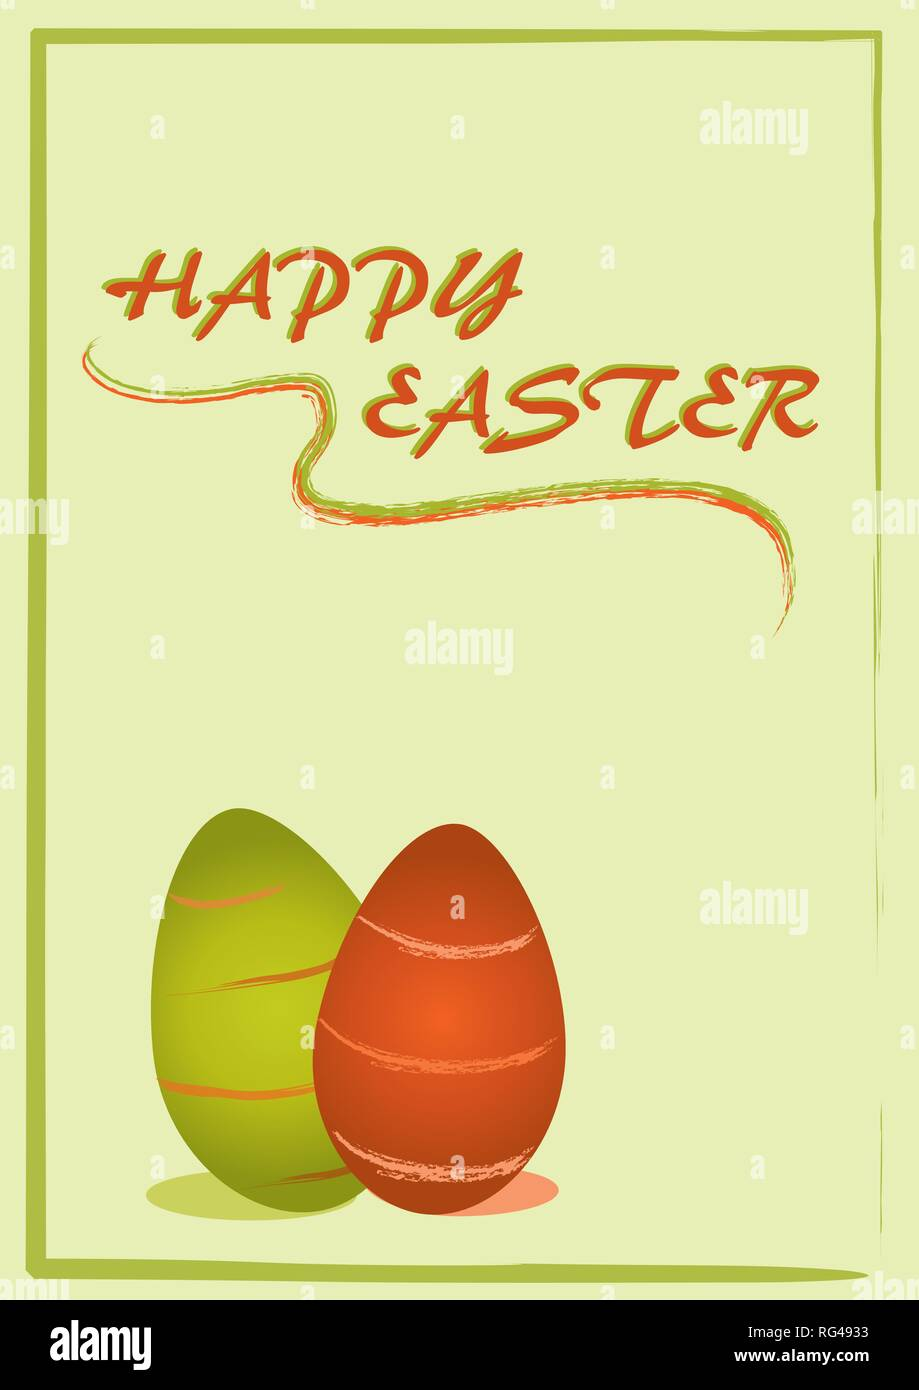 Easter card with striped Easter eggs and the text Happy Easter. Eps 10 vector file - Stock Image